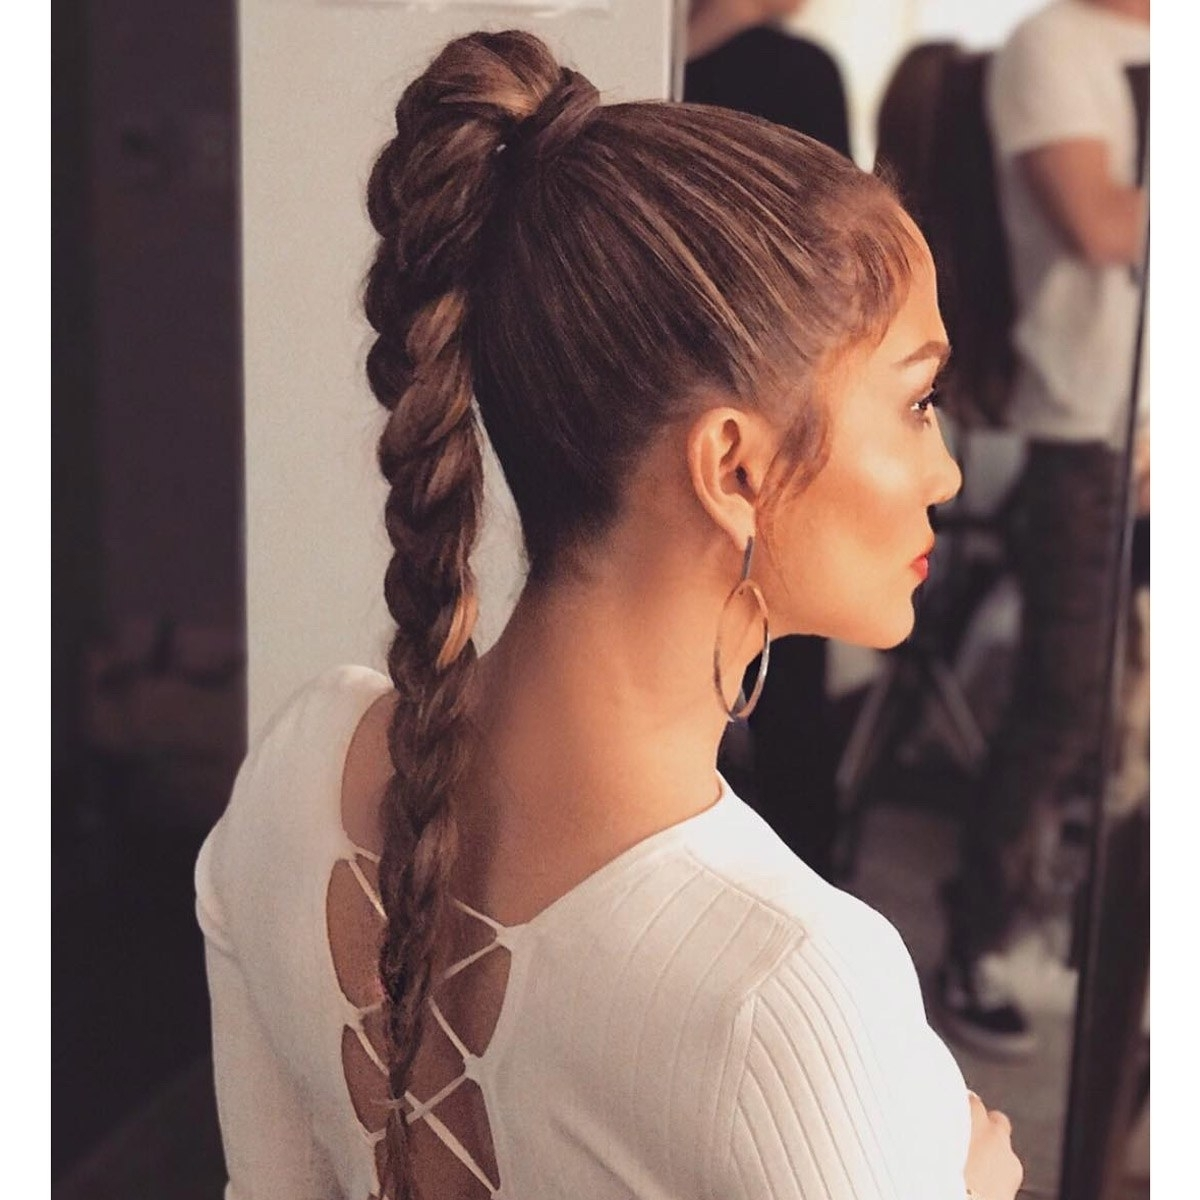 27 Ponytail Hairstyles For 2018: Best Ponytail Styles (View 3 of 20)